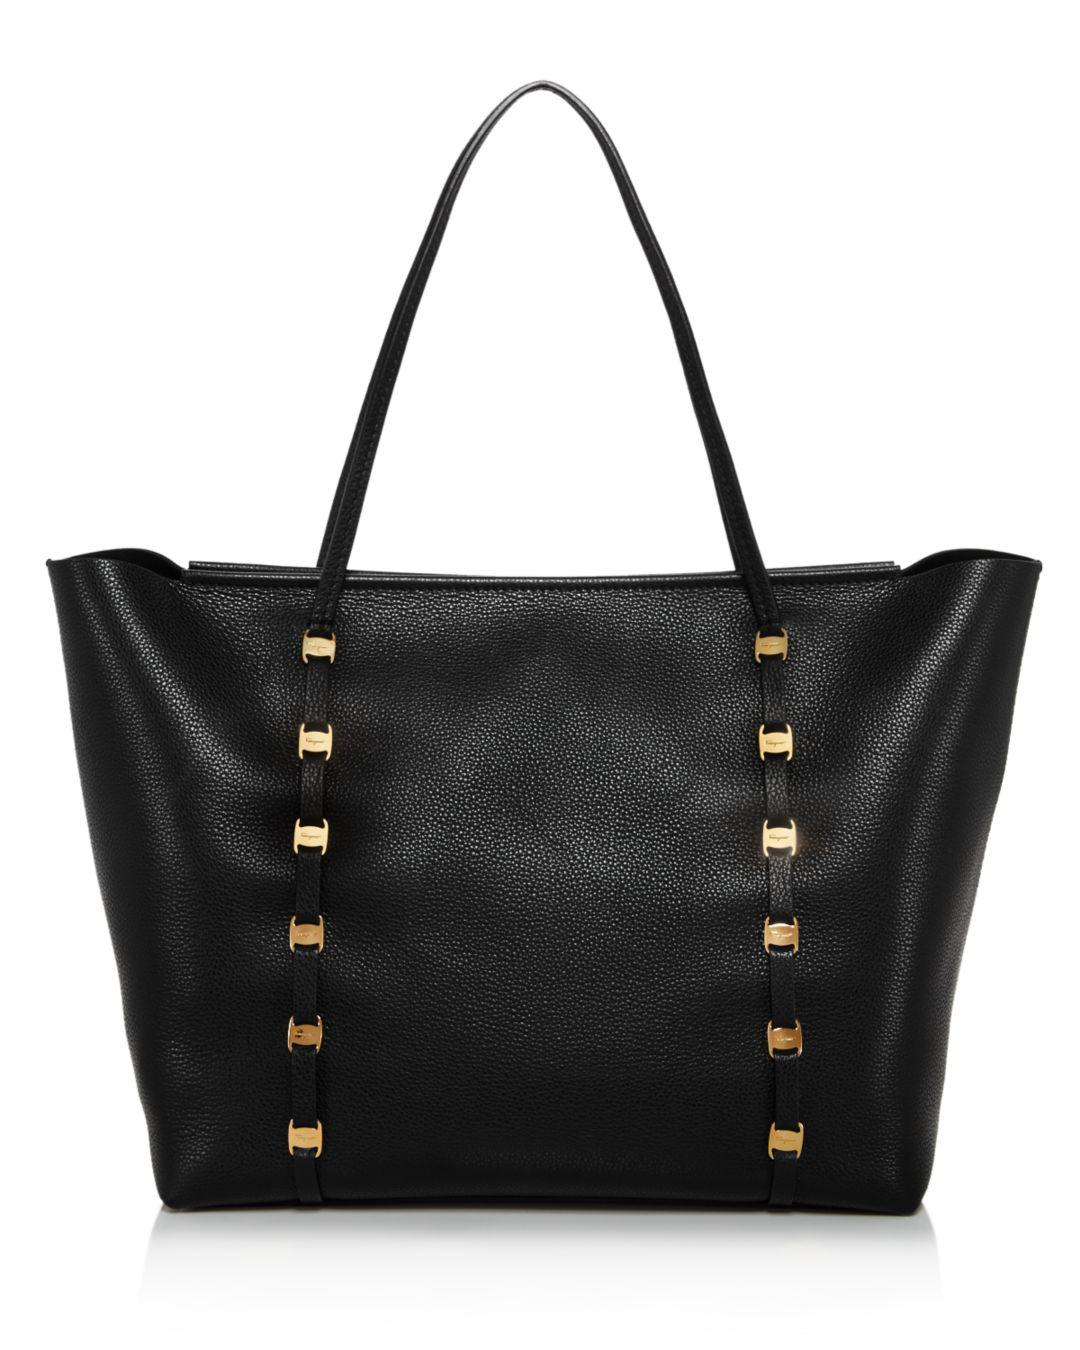 dc605fa5d32 Lyst - Ferragamo Emotion Large Leather Tote in Black